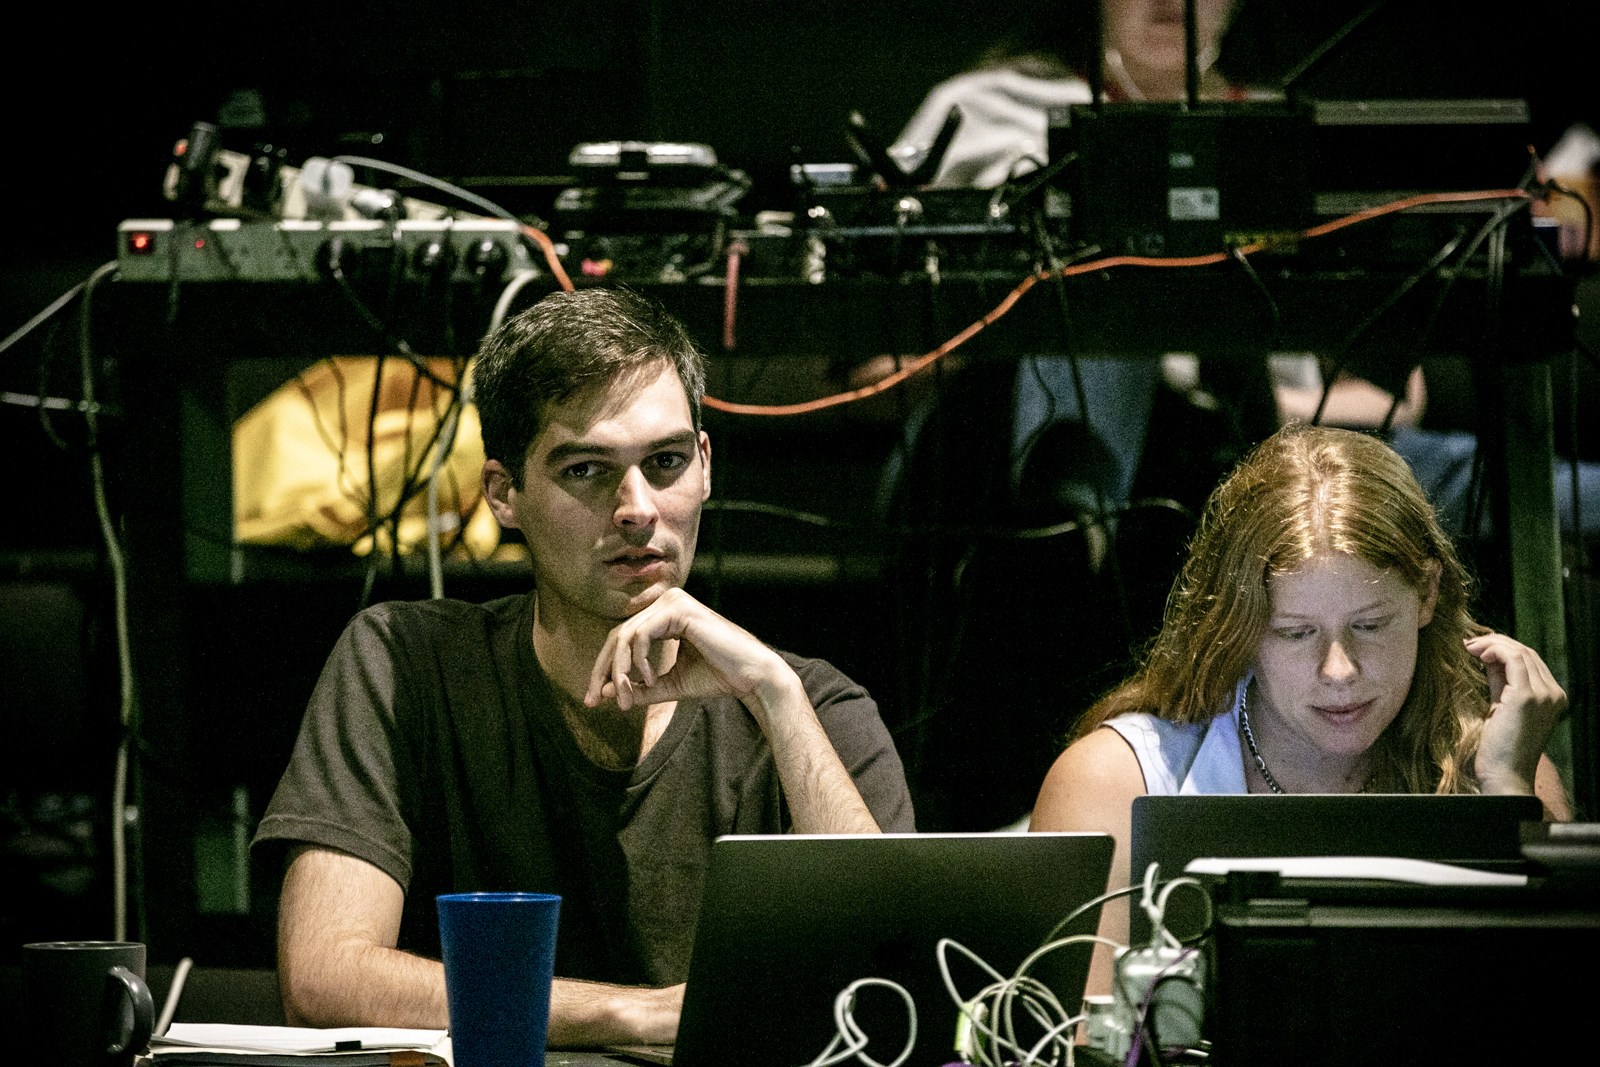 Elias Jamieson Brown, a young white man, sits pensively behind his laptop in the seating banks of the SBW Stables Theatre. Next to him, designer Emma White, a young white woman with red hair, looks at her own laptop. Behind him, a desk full of cords and theatre equipment sits on a raised seating bank.